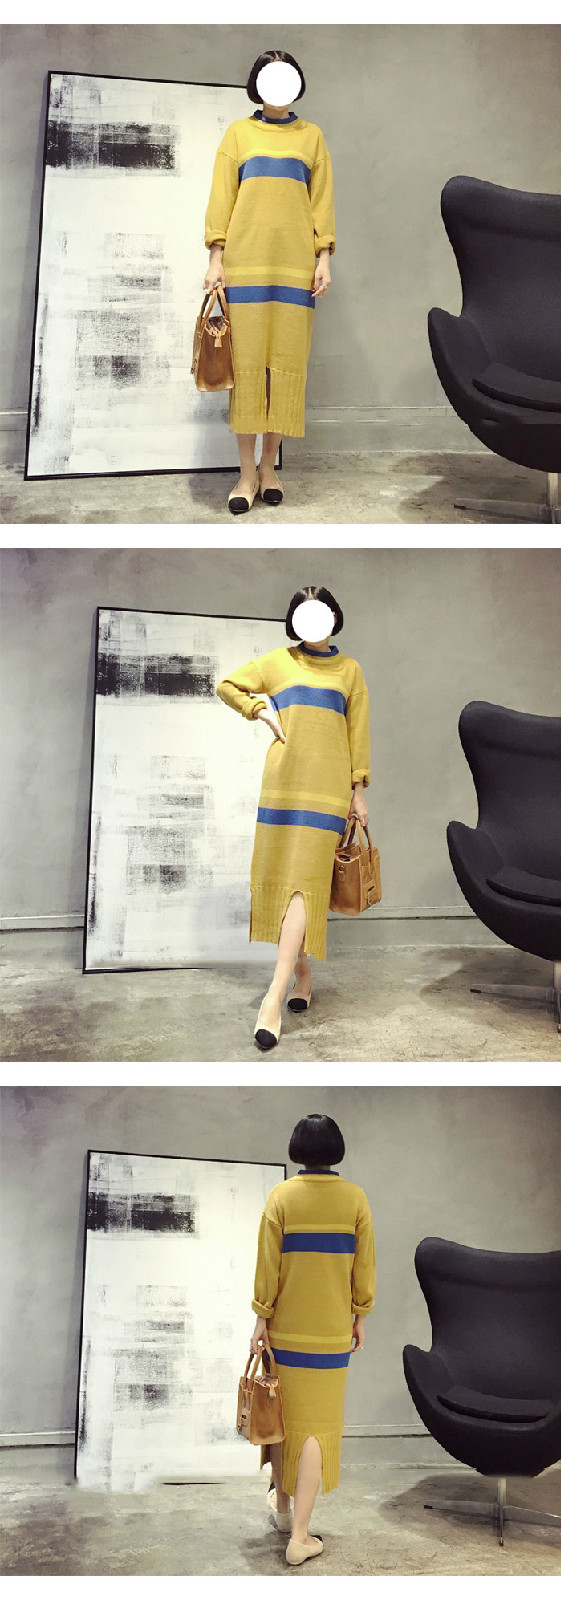 [soonyour] 2016 Autumn Fashion New Round Neck Long Sleeve Spelling Color Vent hem Long yellow Sweater Dress Woman YD31707